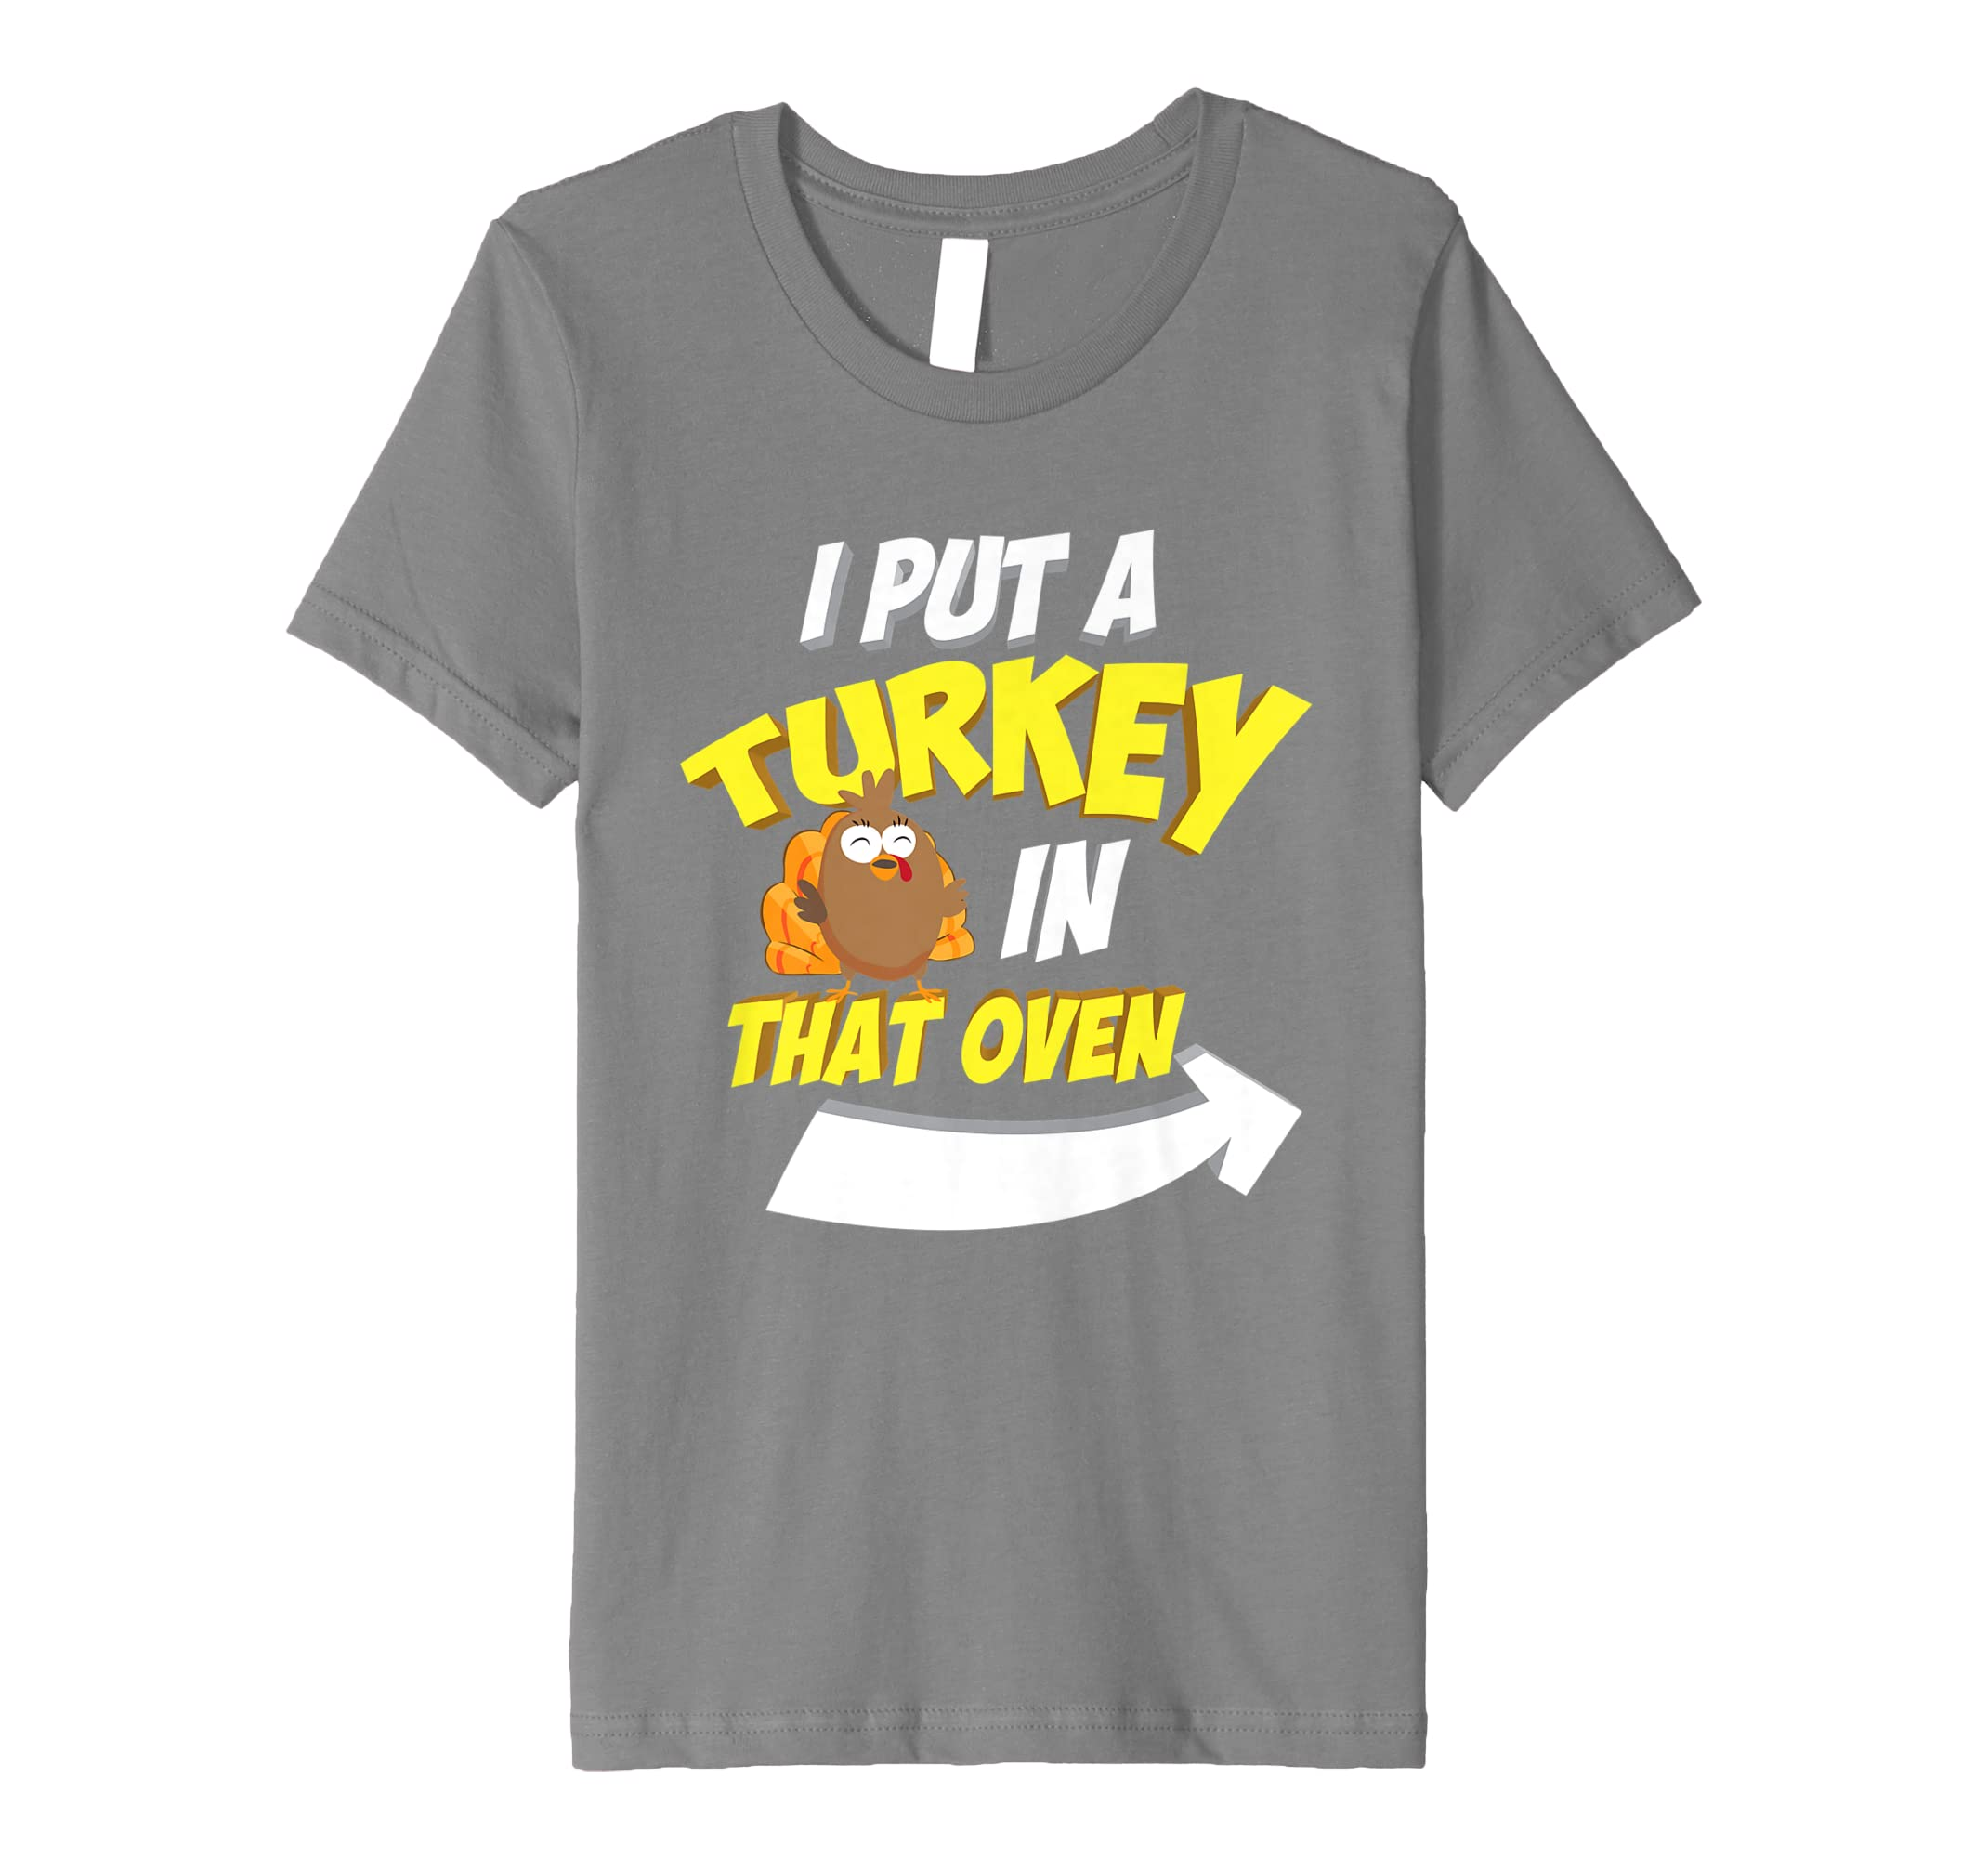 68b07694aaa17 Amazon.com: I Put A Turkey In That Oven Shirt | Cool Thanksgiving Gift:  Clothing